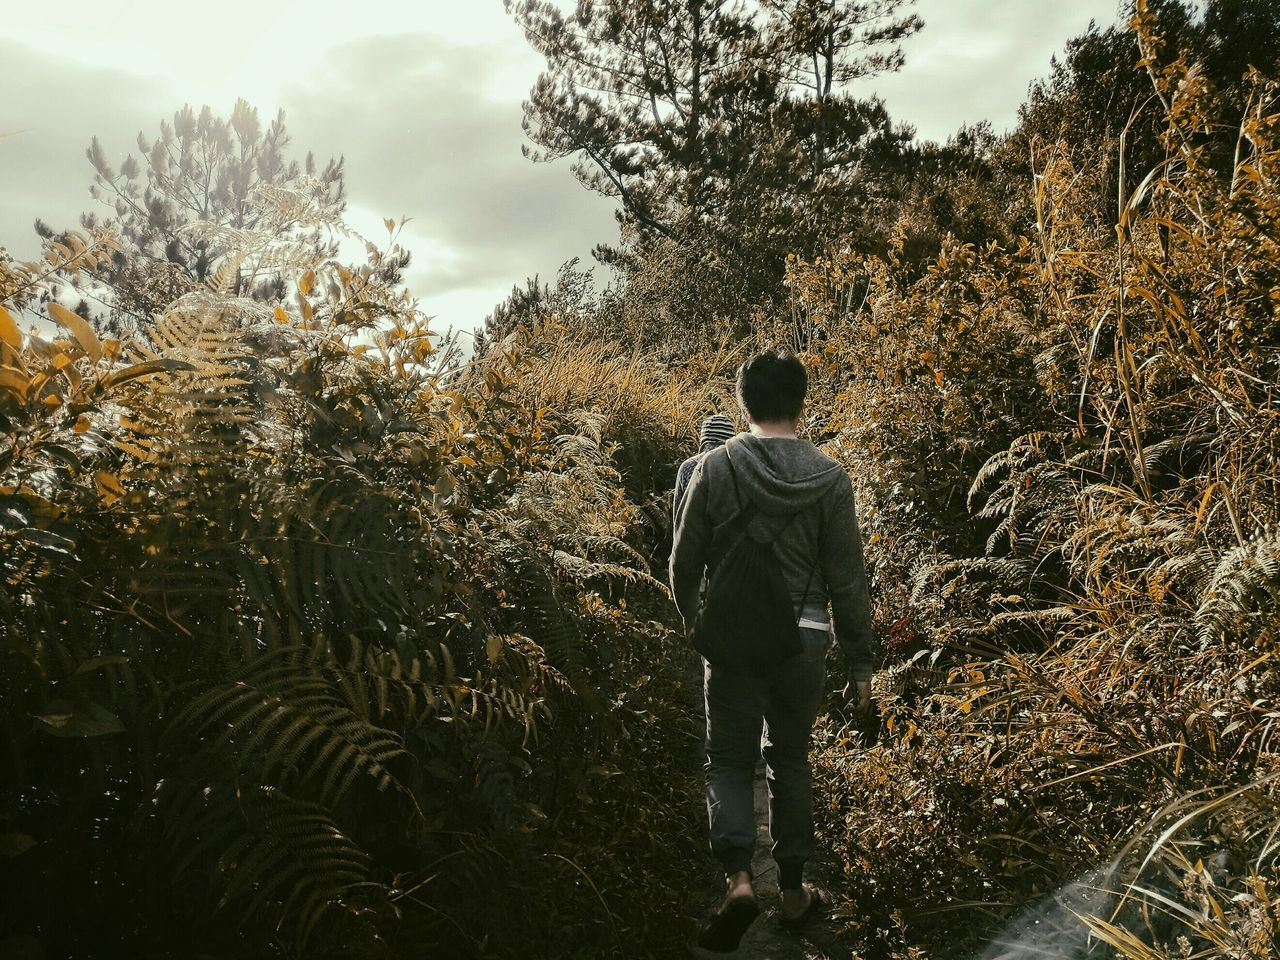 tree, growth, nature, rear view, real people, walking, sky, one person, standing, landscape, outdoors, beauty in nature, full length, day, people